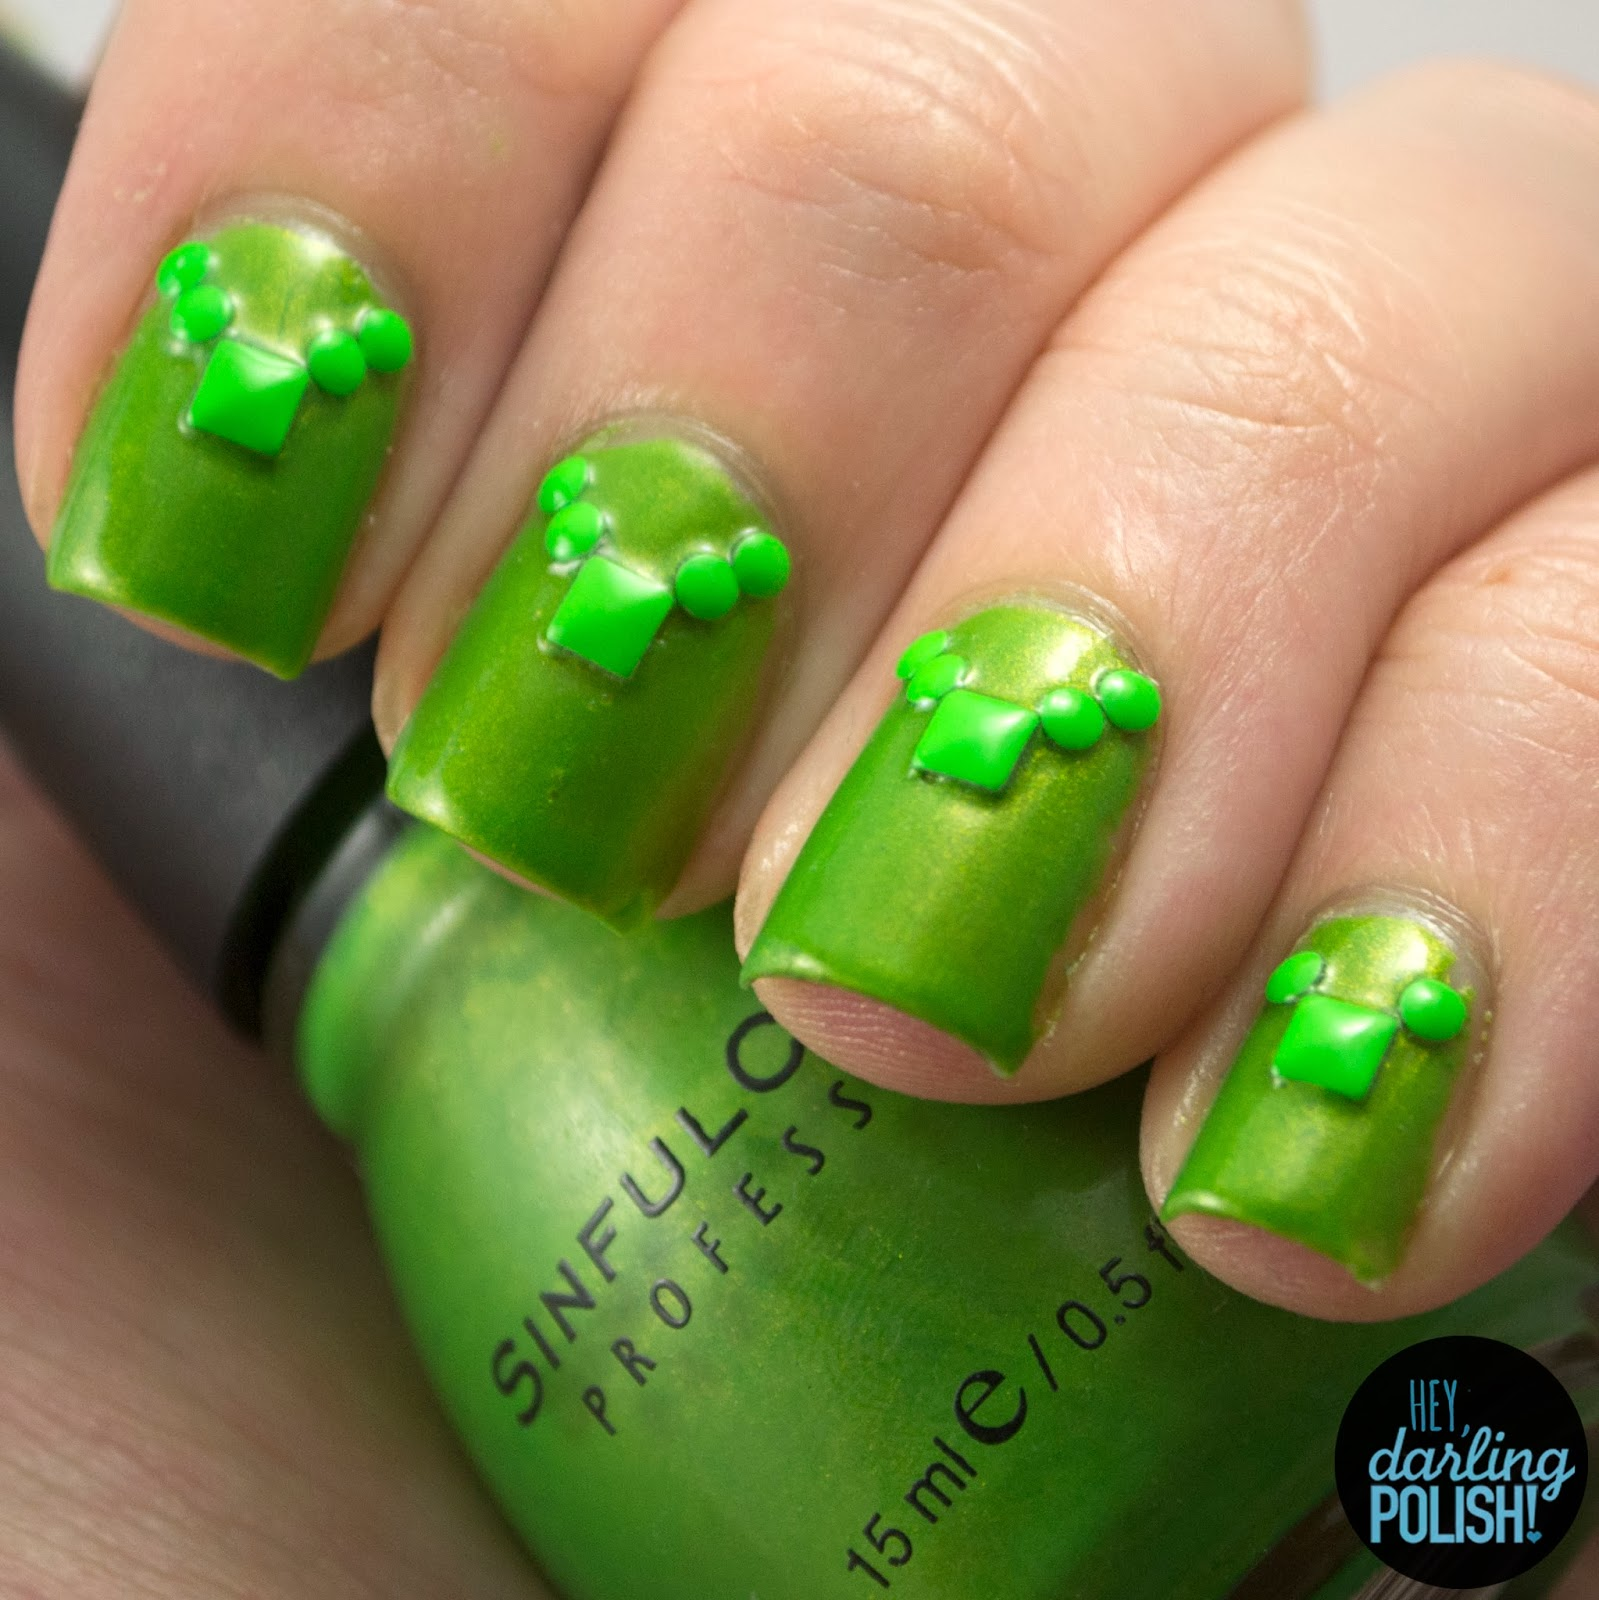 nails, nail art, nail polish, polish, studs, green, golden oldie thursdays, hey darling polish